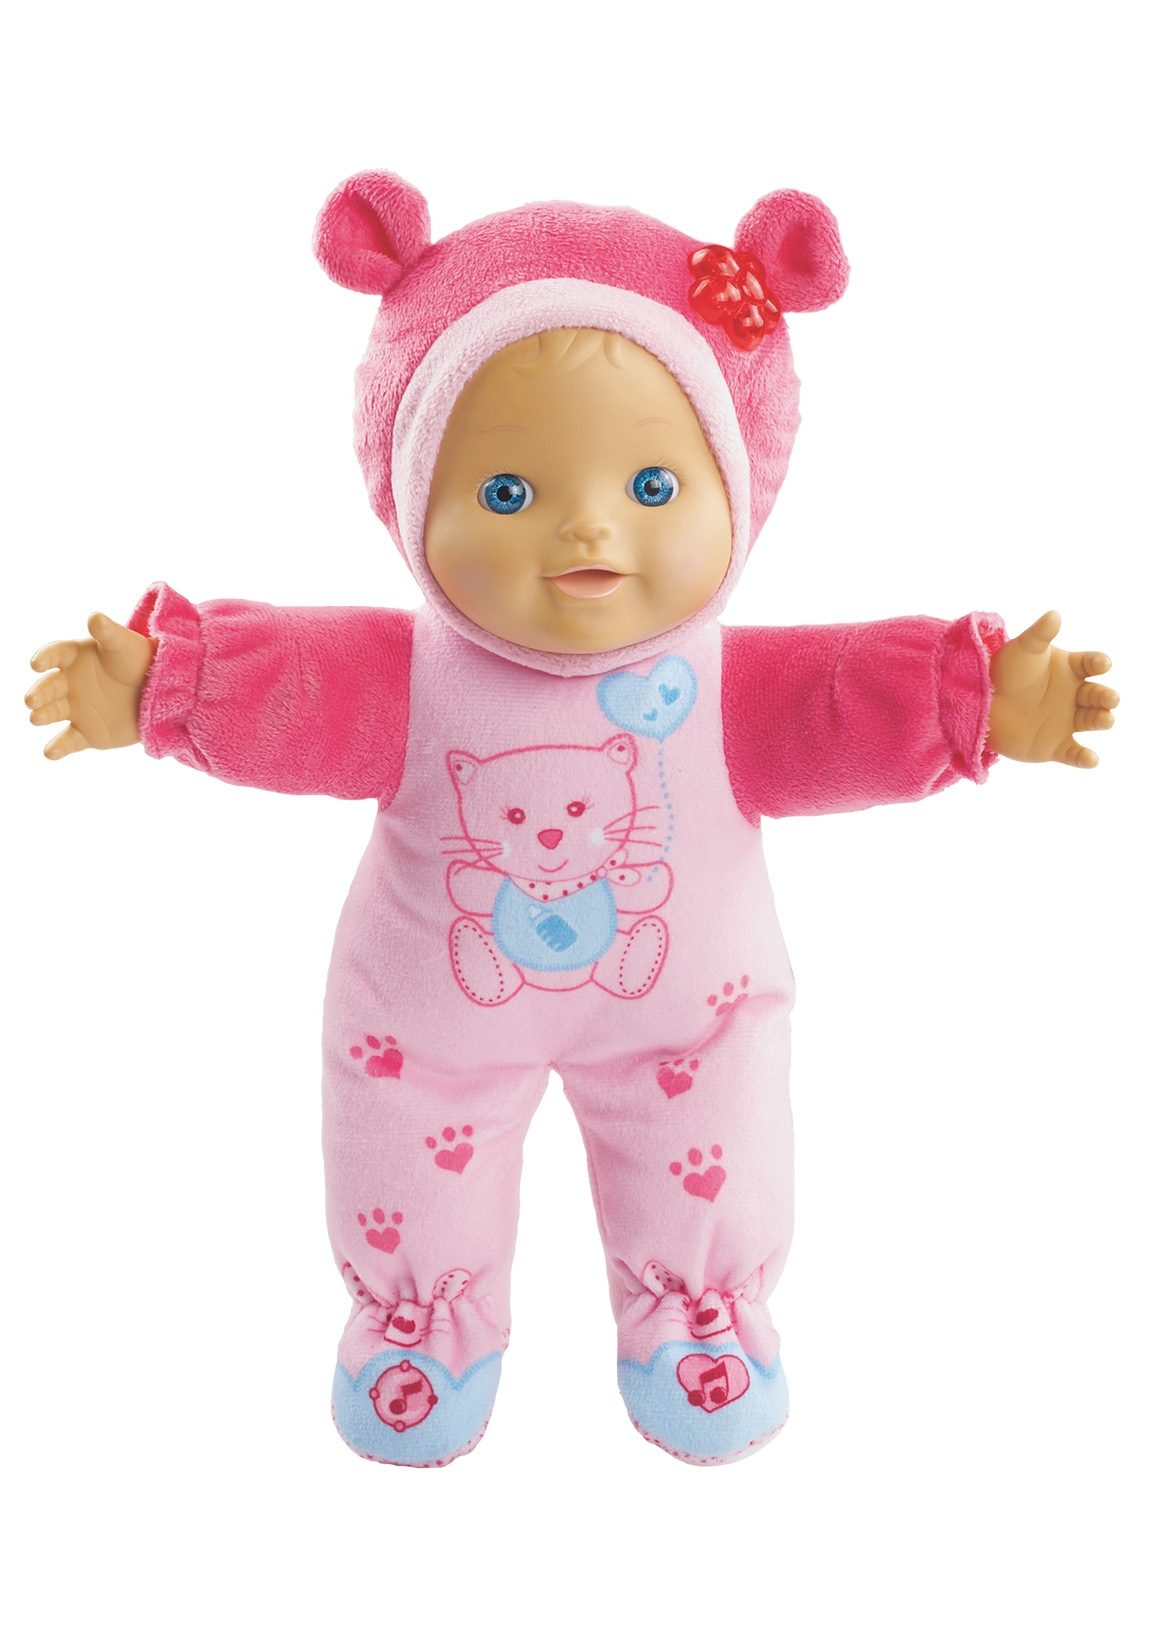 VTech Puppe, »VTech Baby, Little Love - Lena will spielen«.